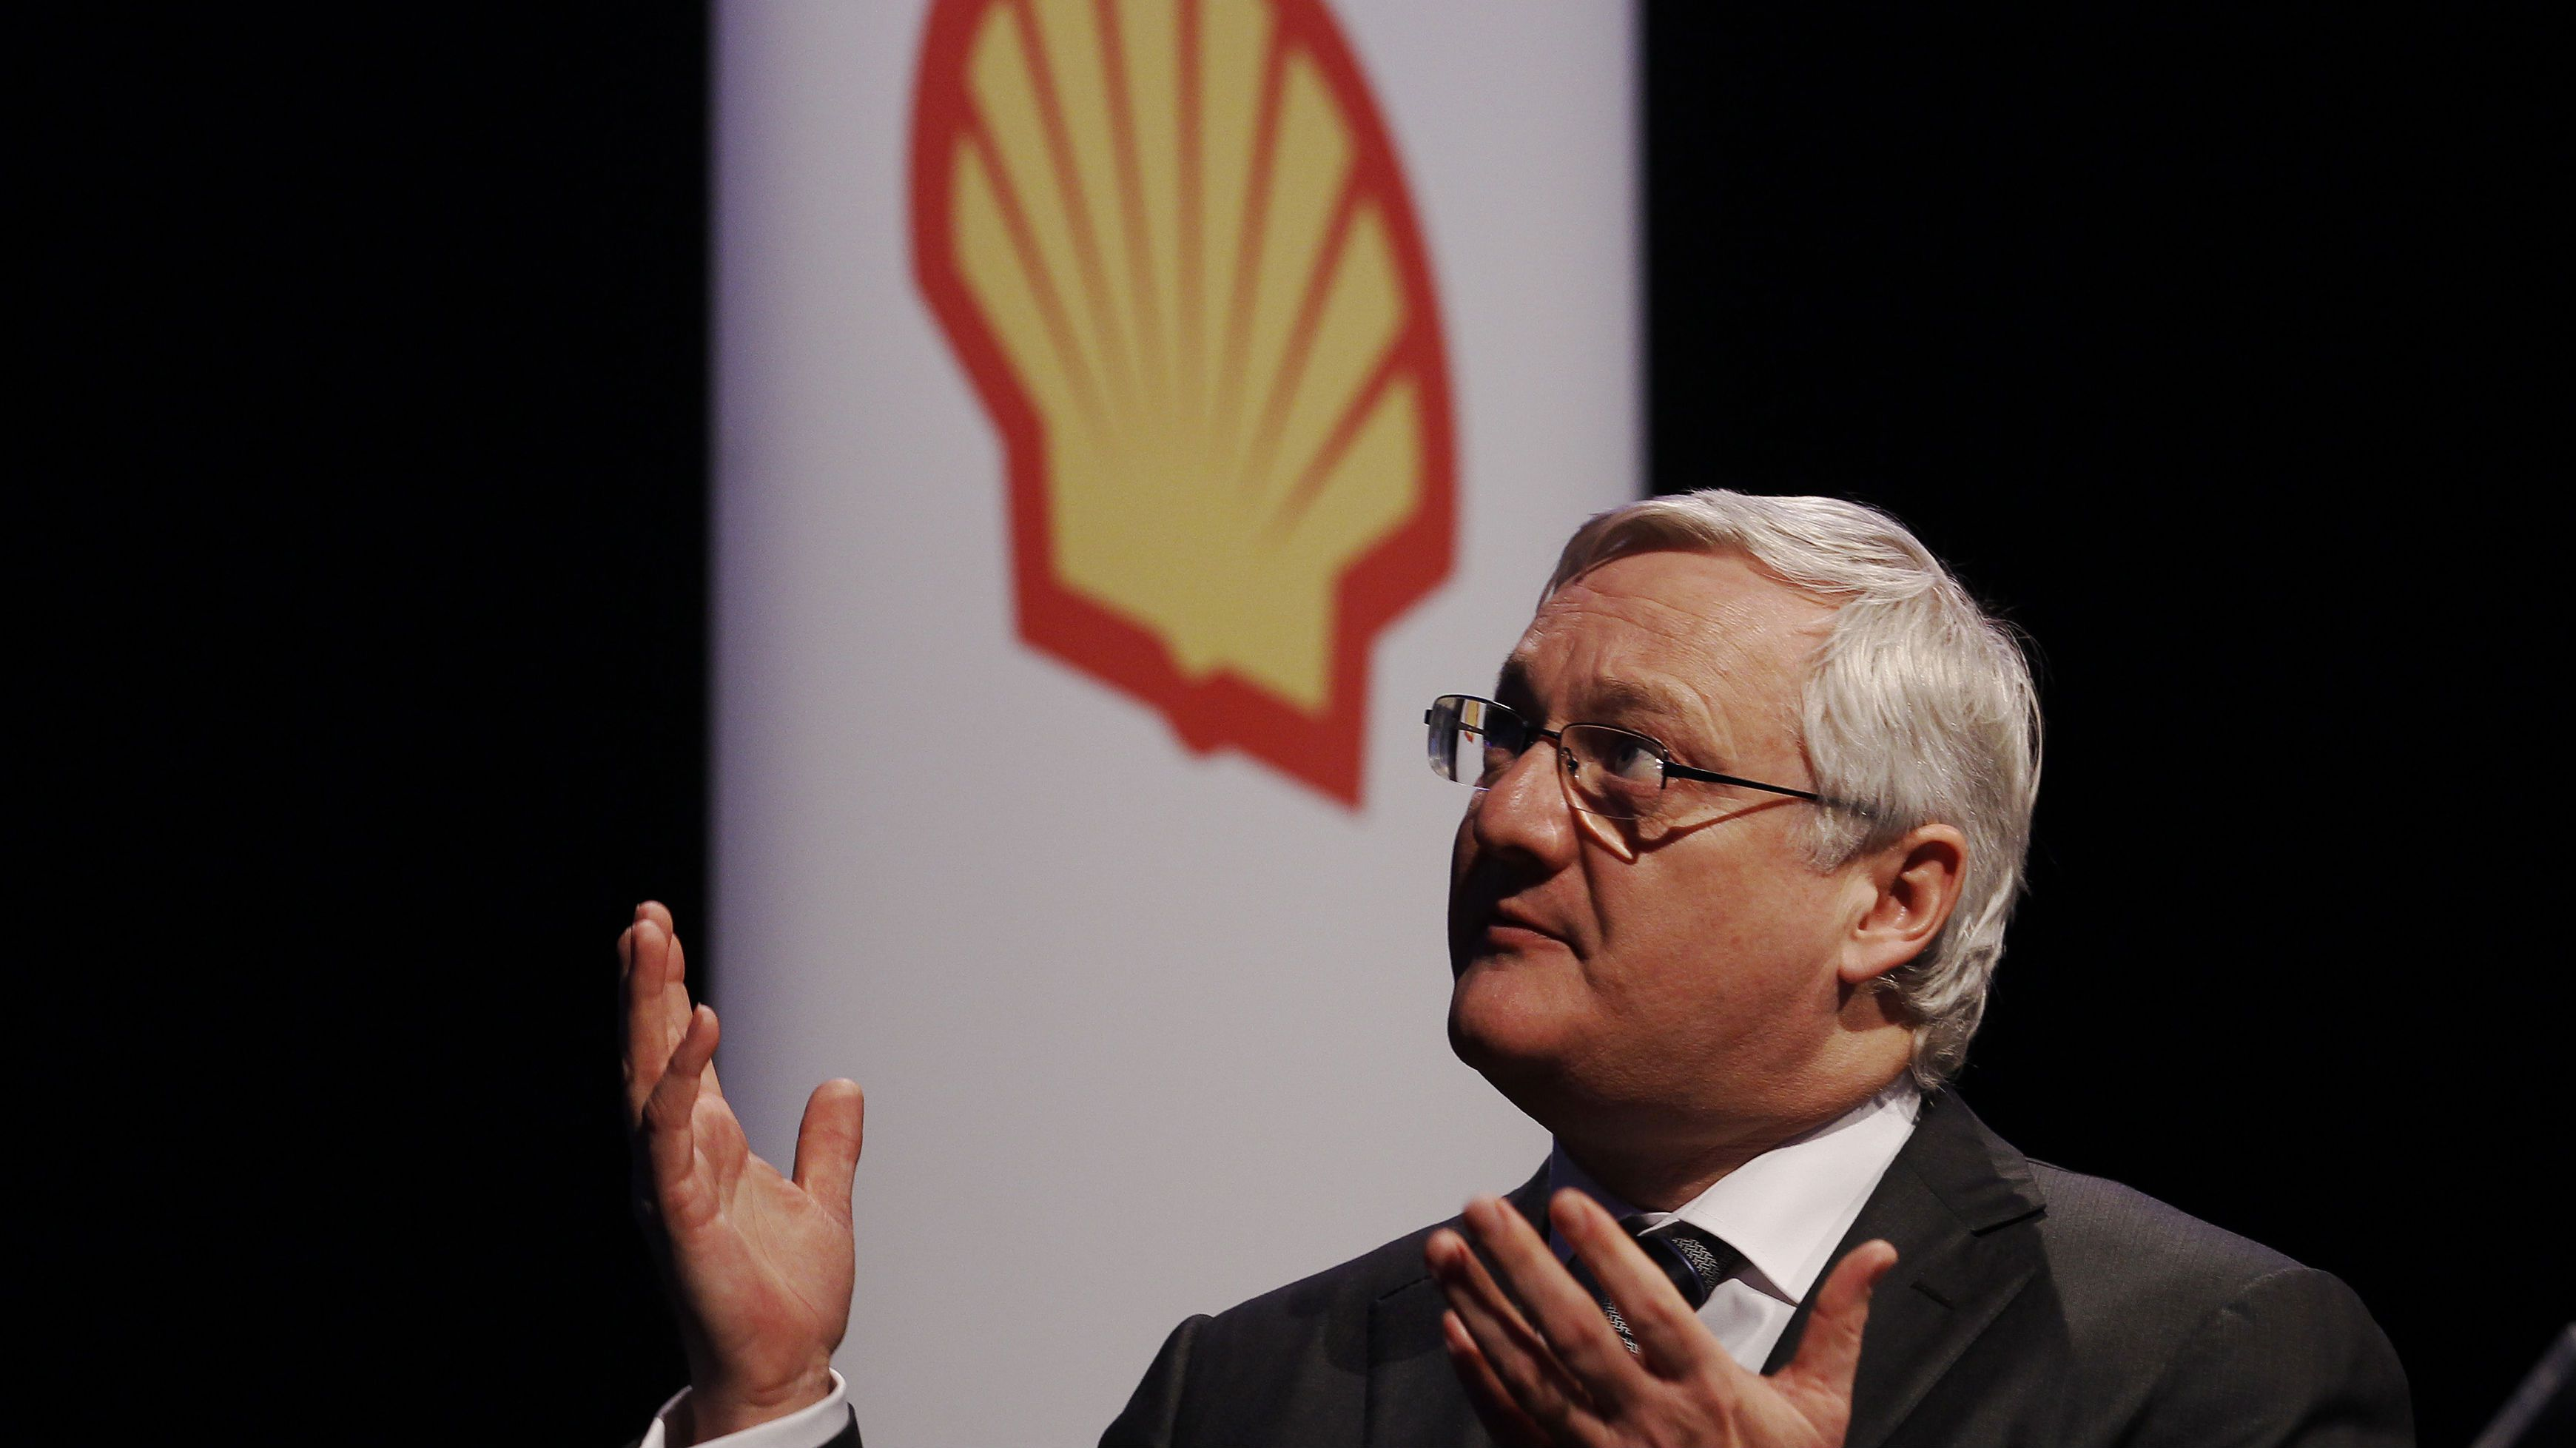 Oil giant Royal Dutch Shell's CEO Peter Voser speaks at the 4th quarter and full year results presentation in London February 2, 2012.